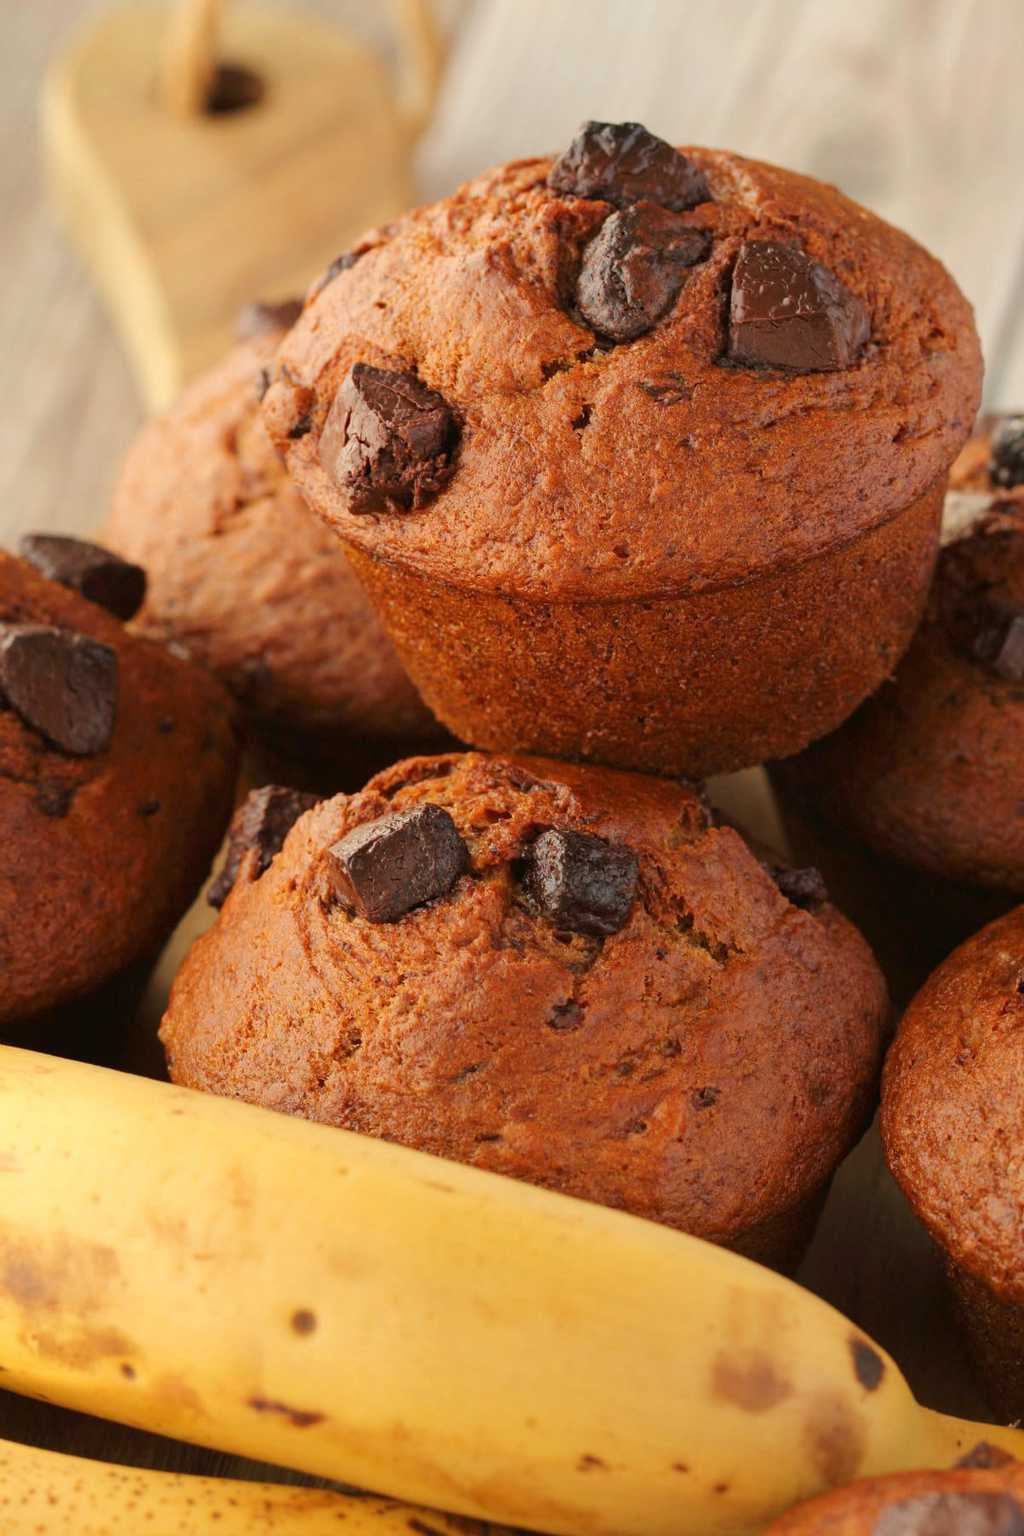 Vegan banana chocolate chip muffins in a stack.